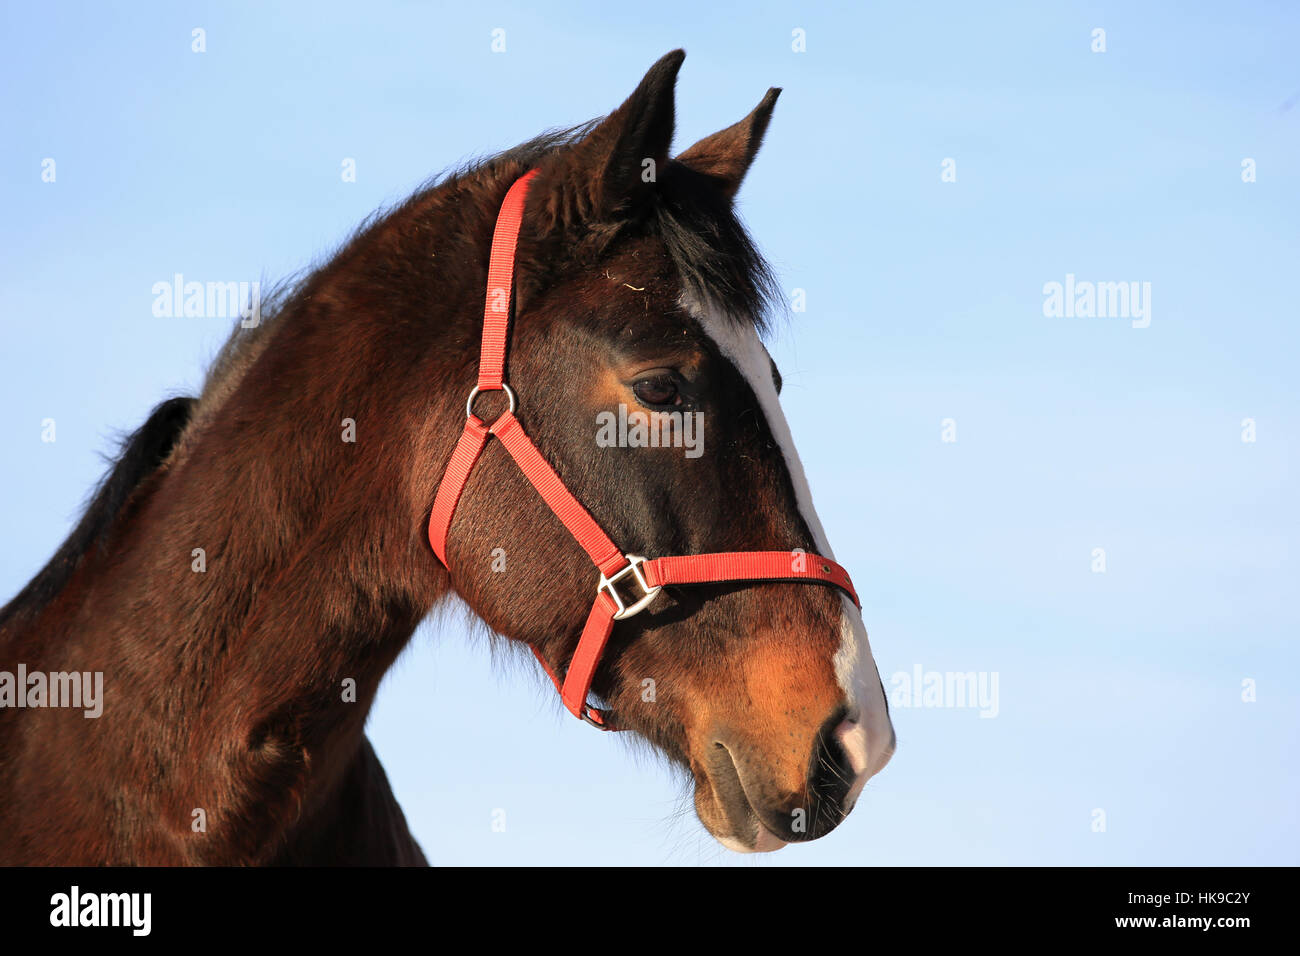 Close up portrait of beautiful bay thoroughbred horse against blue sky. - Stock Image